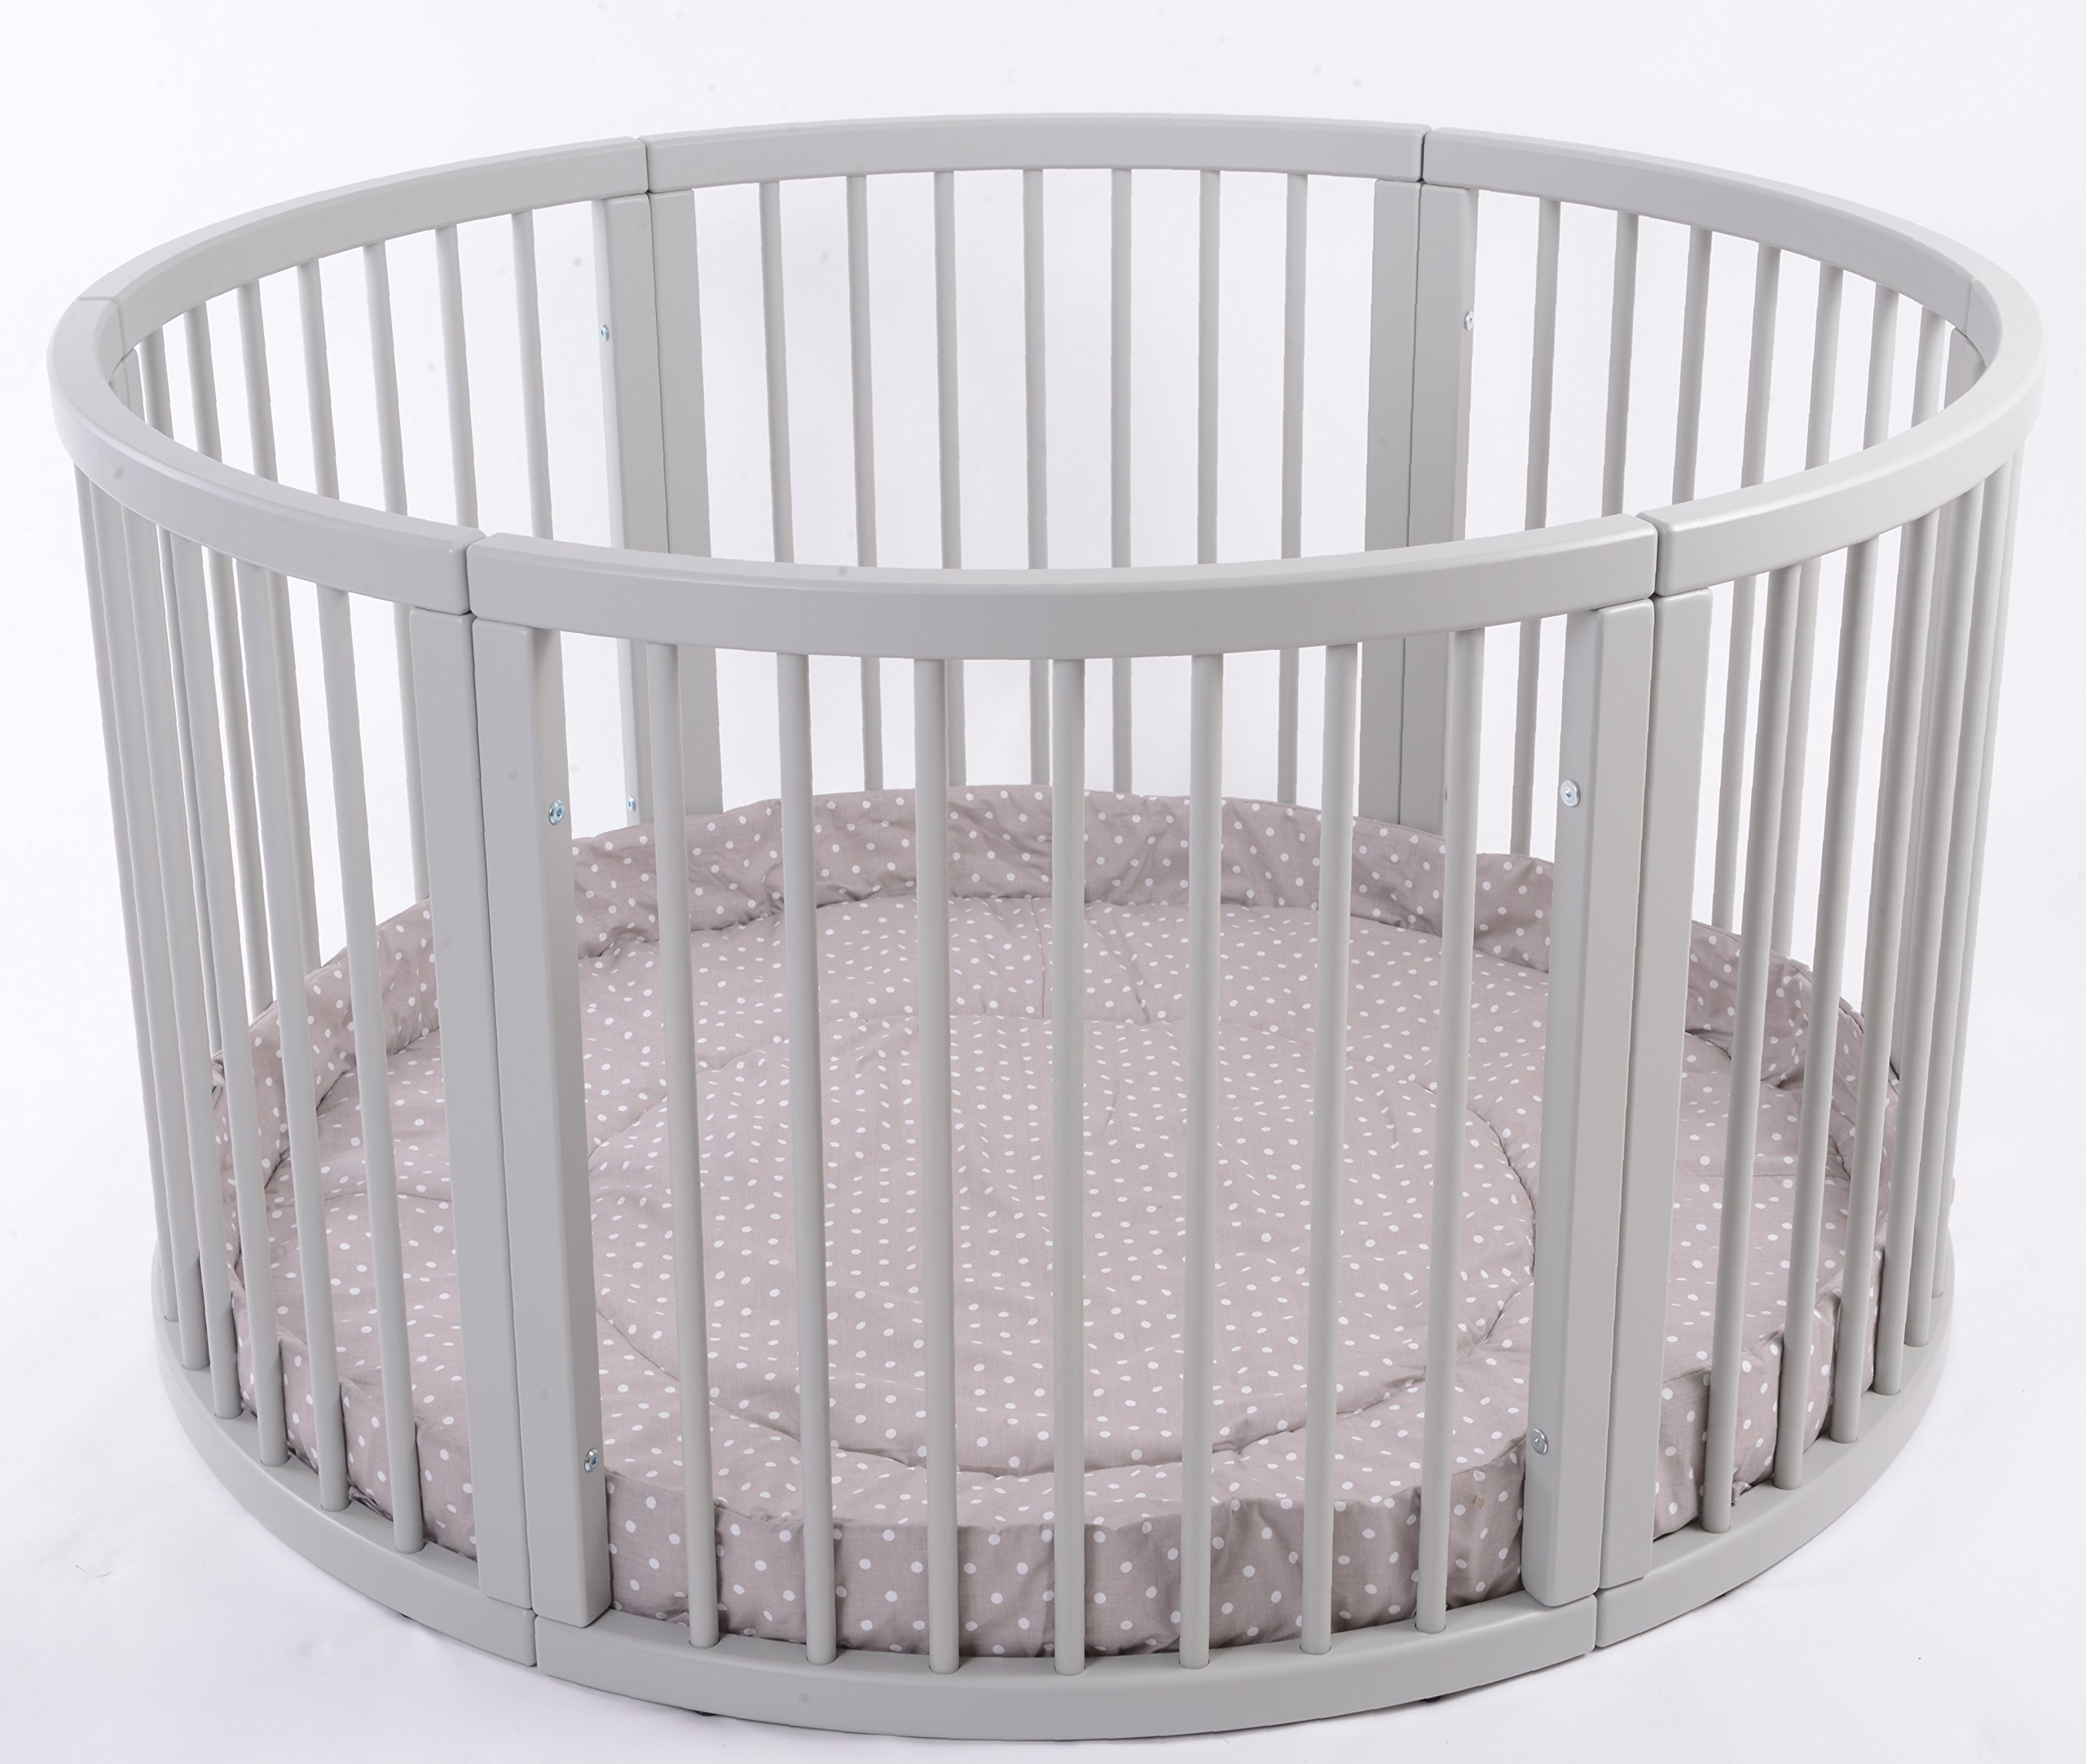 MJmark VERY LARGE Wooden Round PLAYPEN ATLAS QUATTRO with play-mat in Cappucino with white Polk Dots SALE SALE  Height 70 cm approx; Ø 120cm Playmat included made from solid hard wood (Birch) 2